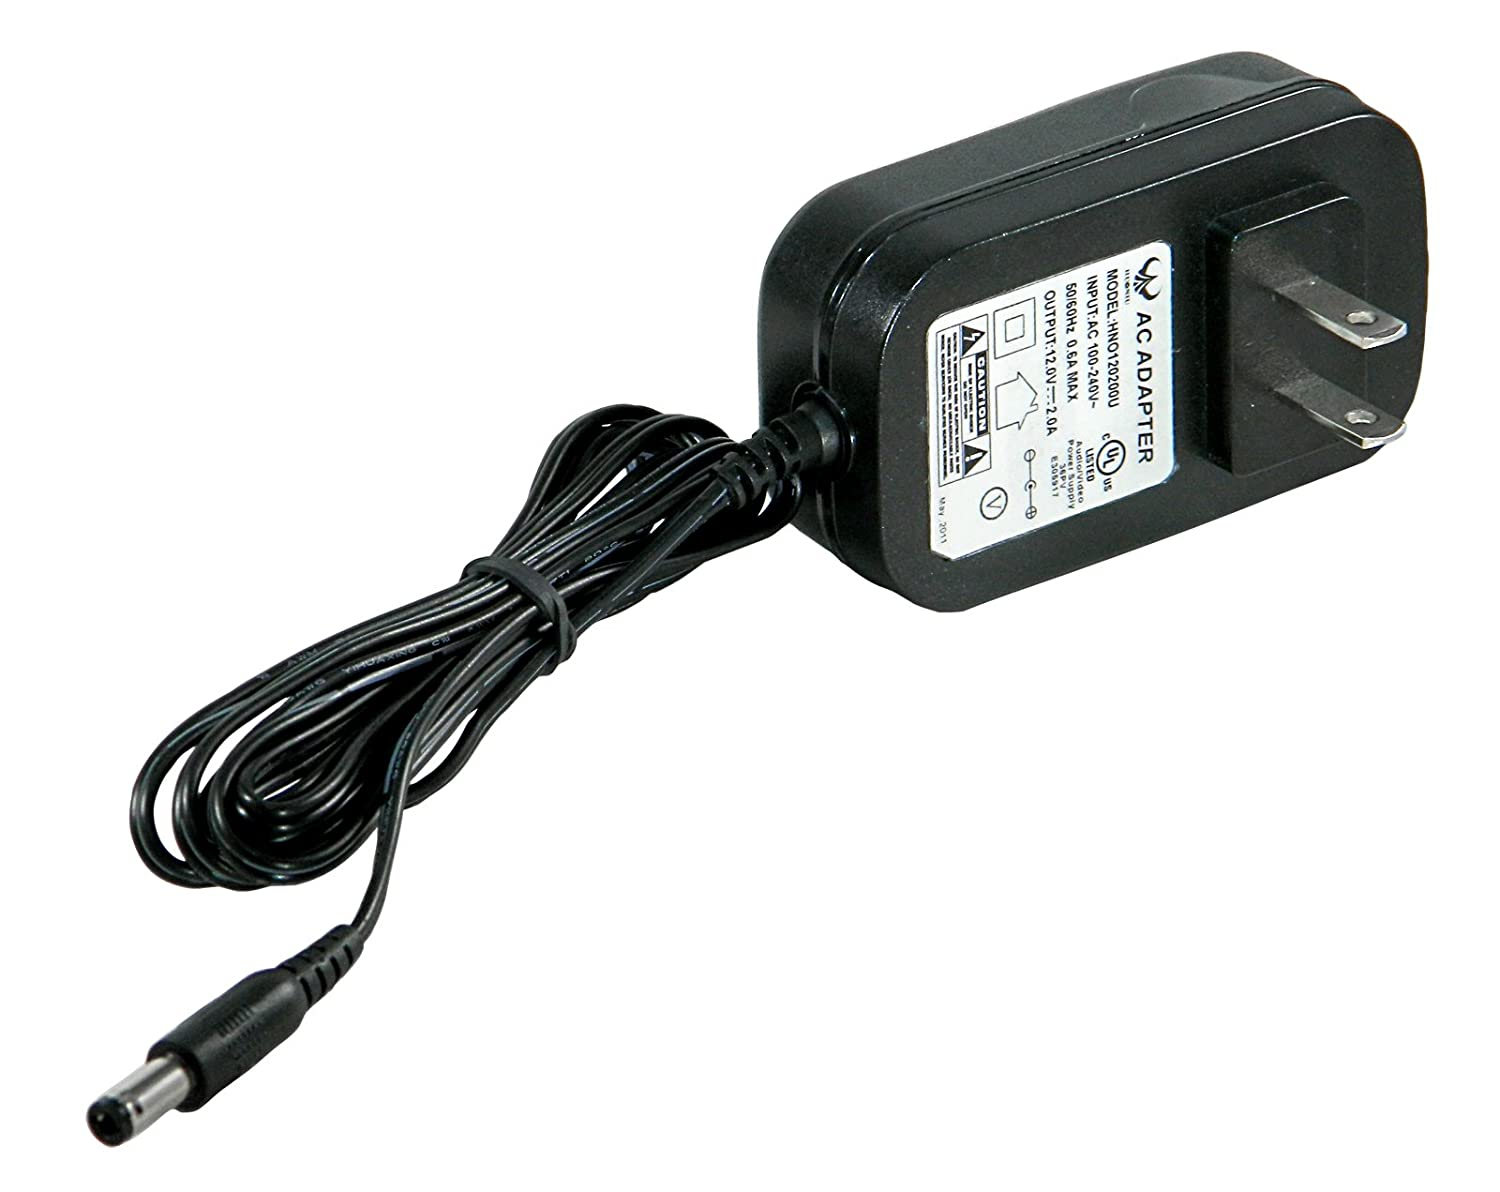 Streamlight 44909 Waypoint Rechargeable 120V AC Cord